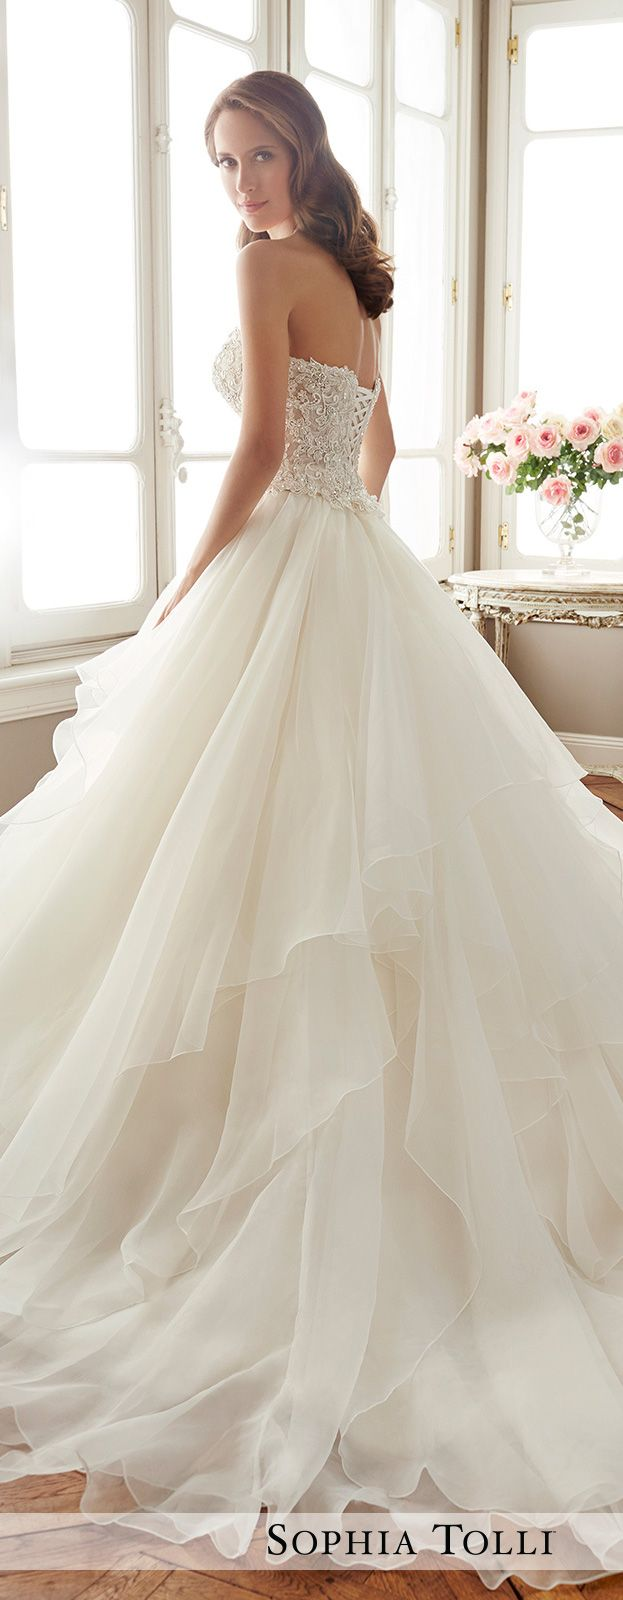 137 best Wedding dresses images on Pinterest | Short wedding gowns ...